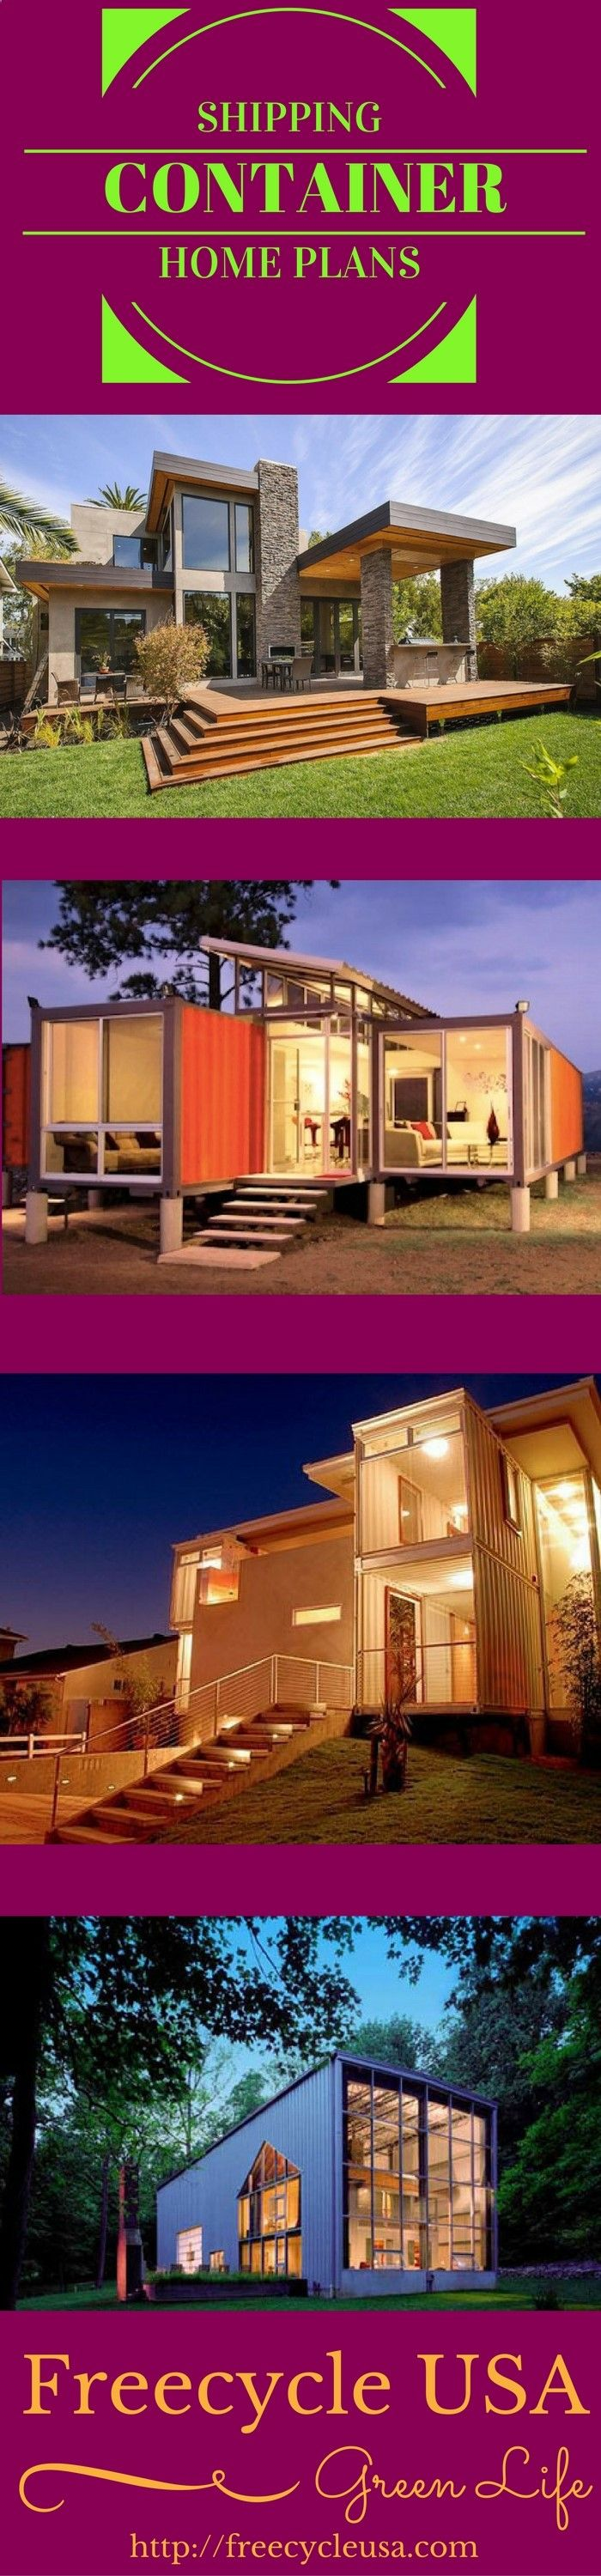 Container House - Beautiful Container Homes that can be built for pennies on the dollar. Find out more on how you can build your own Shipping Container Home. Who Else Wants Simple Step-By-Step Plans To Design And Build A Container Home From Scratch?